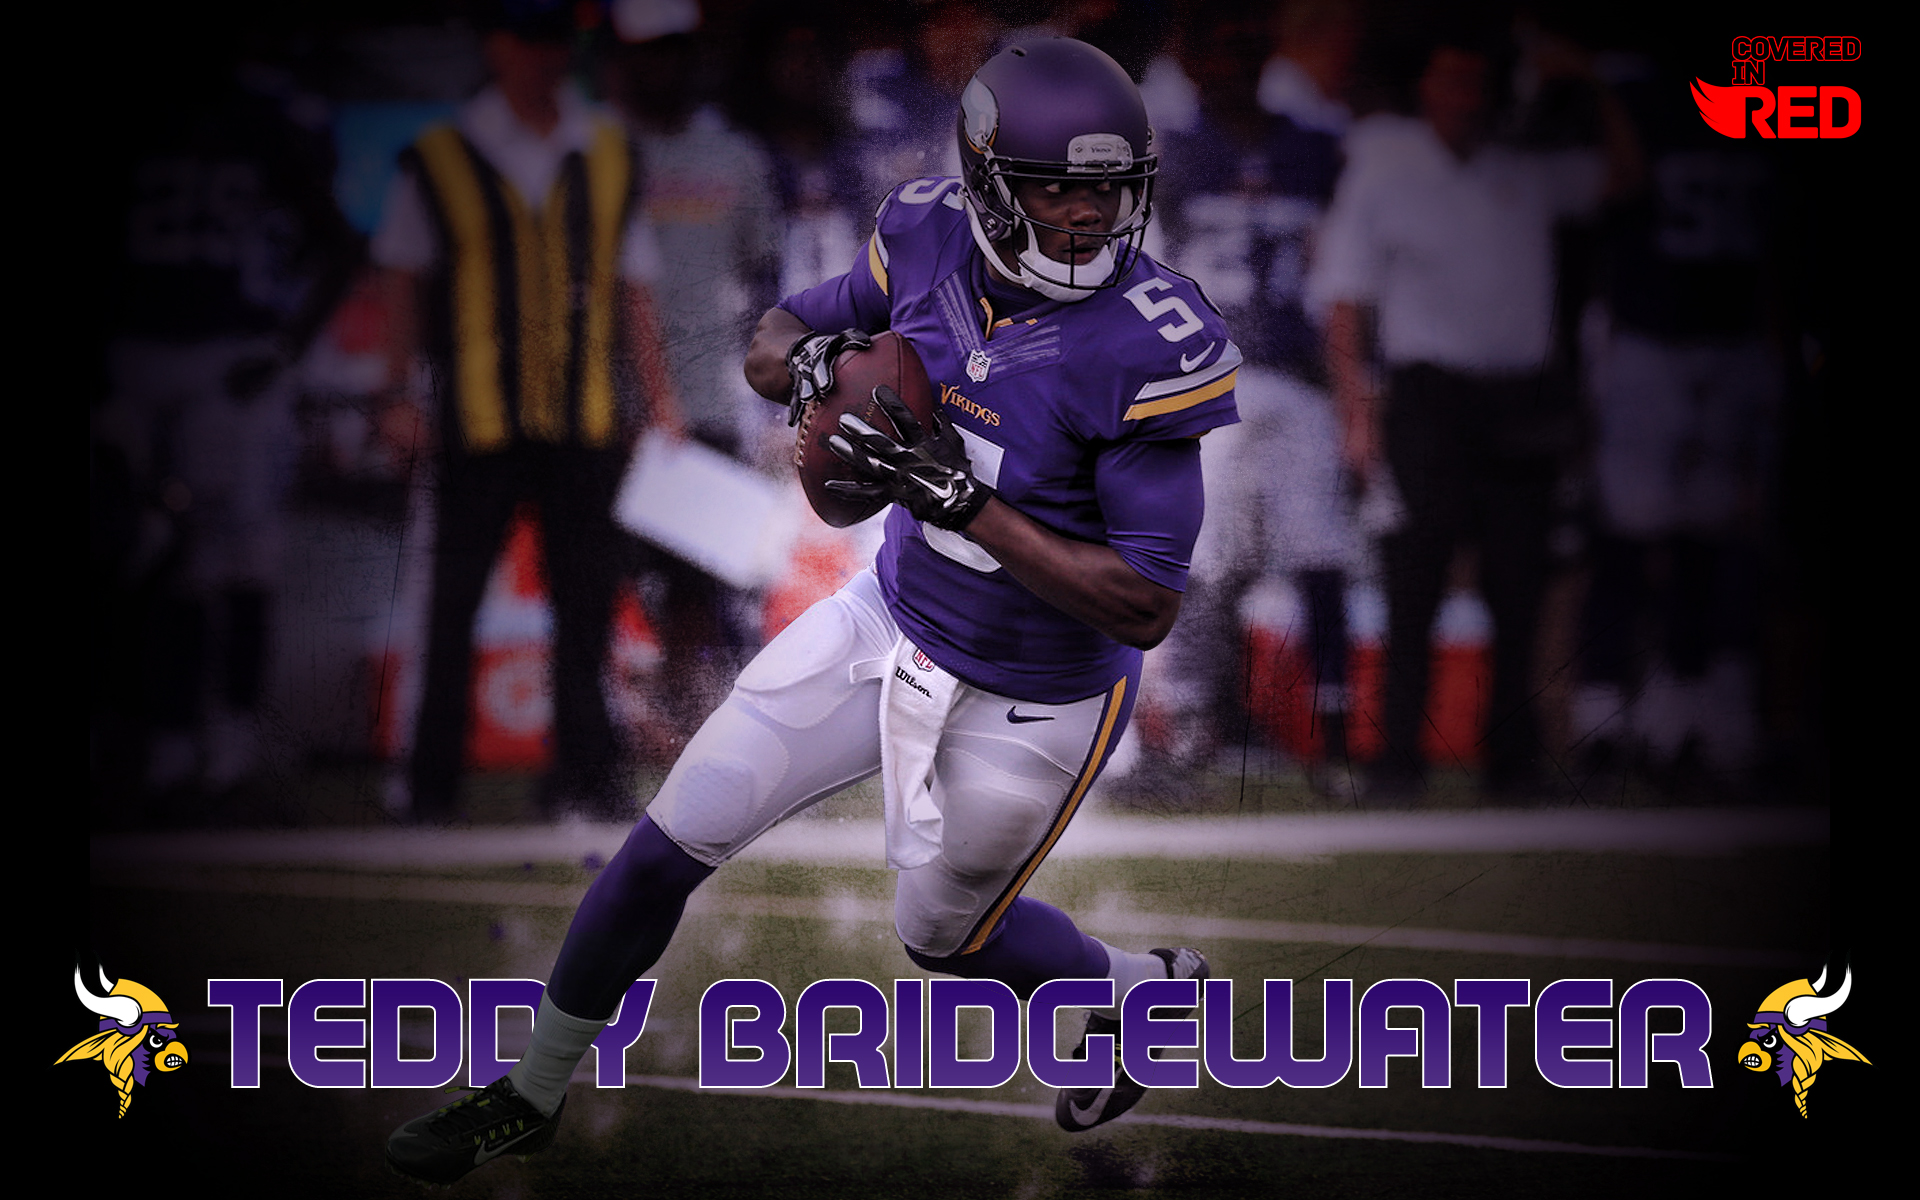 Teddy Bridgewater Vikings Wallpaper